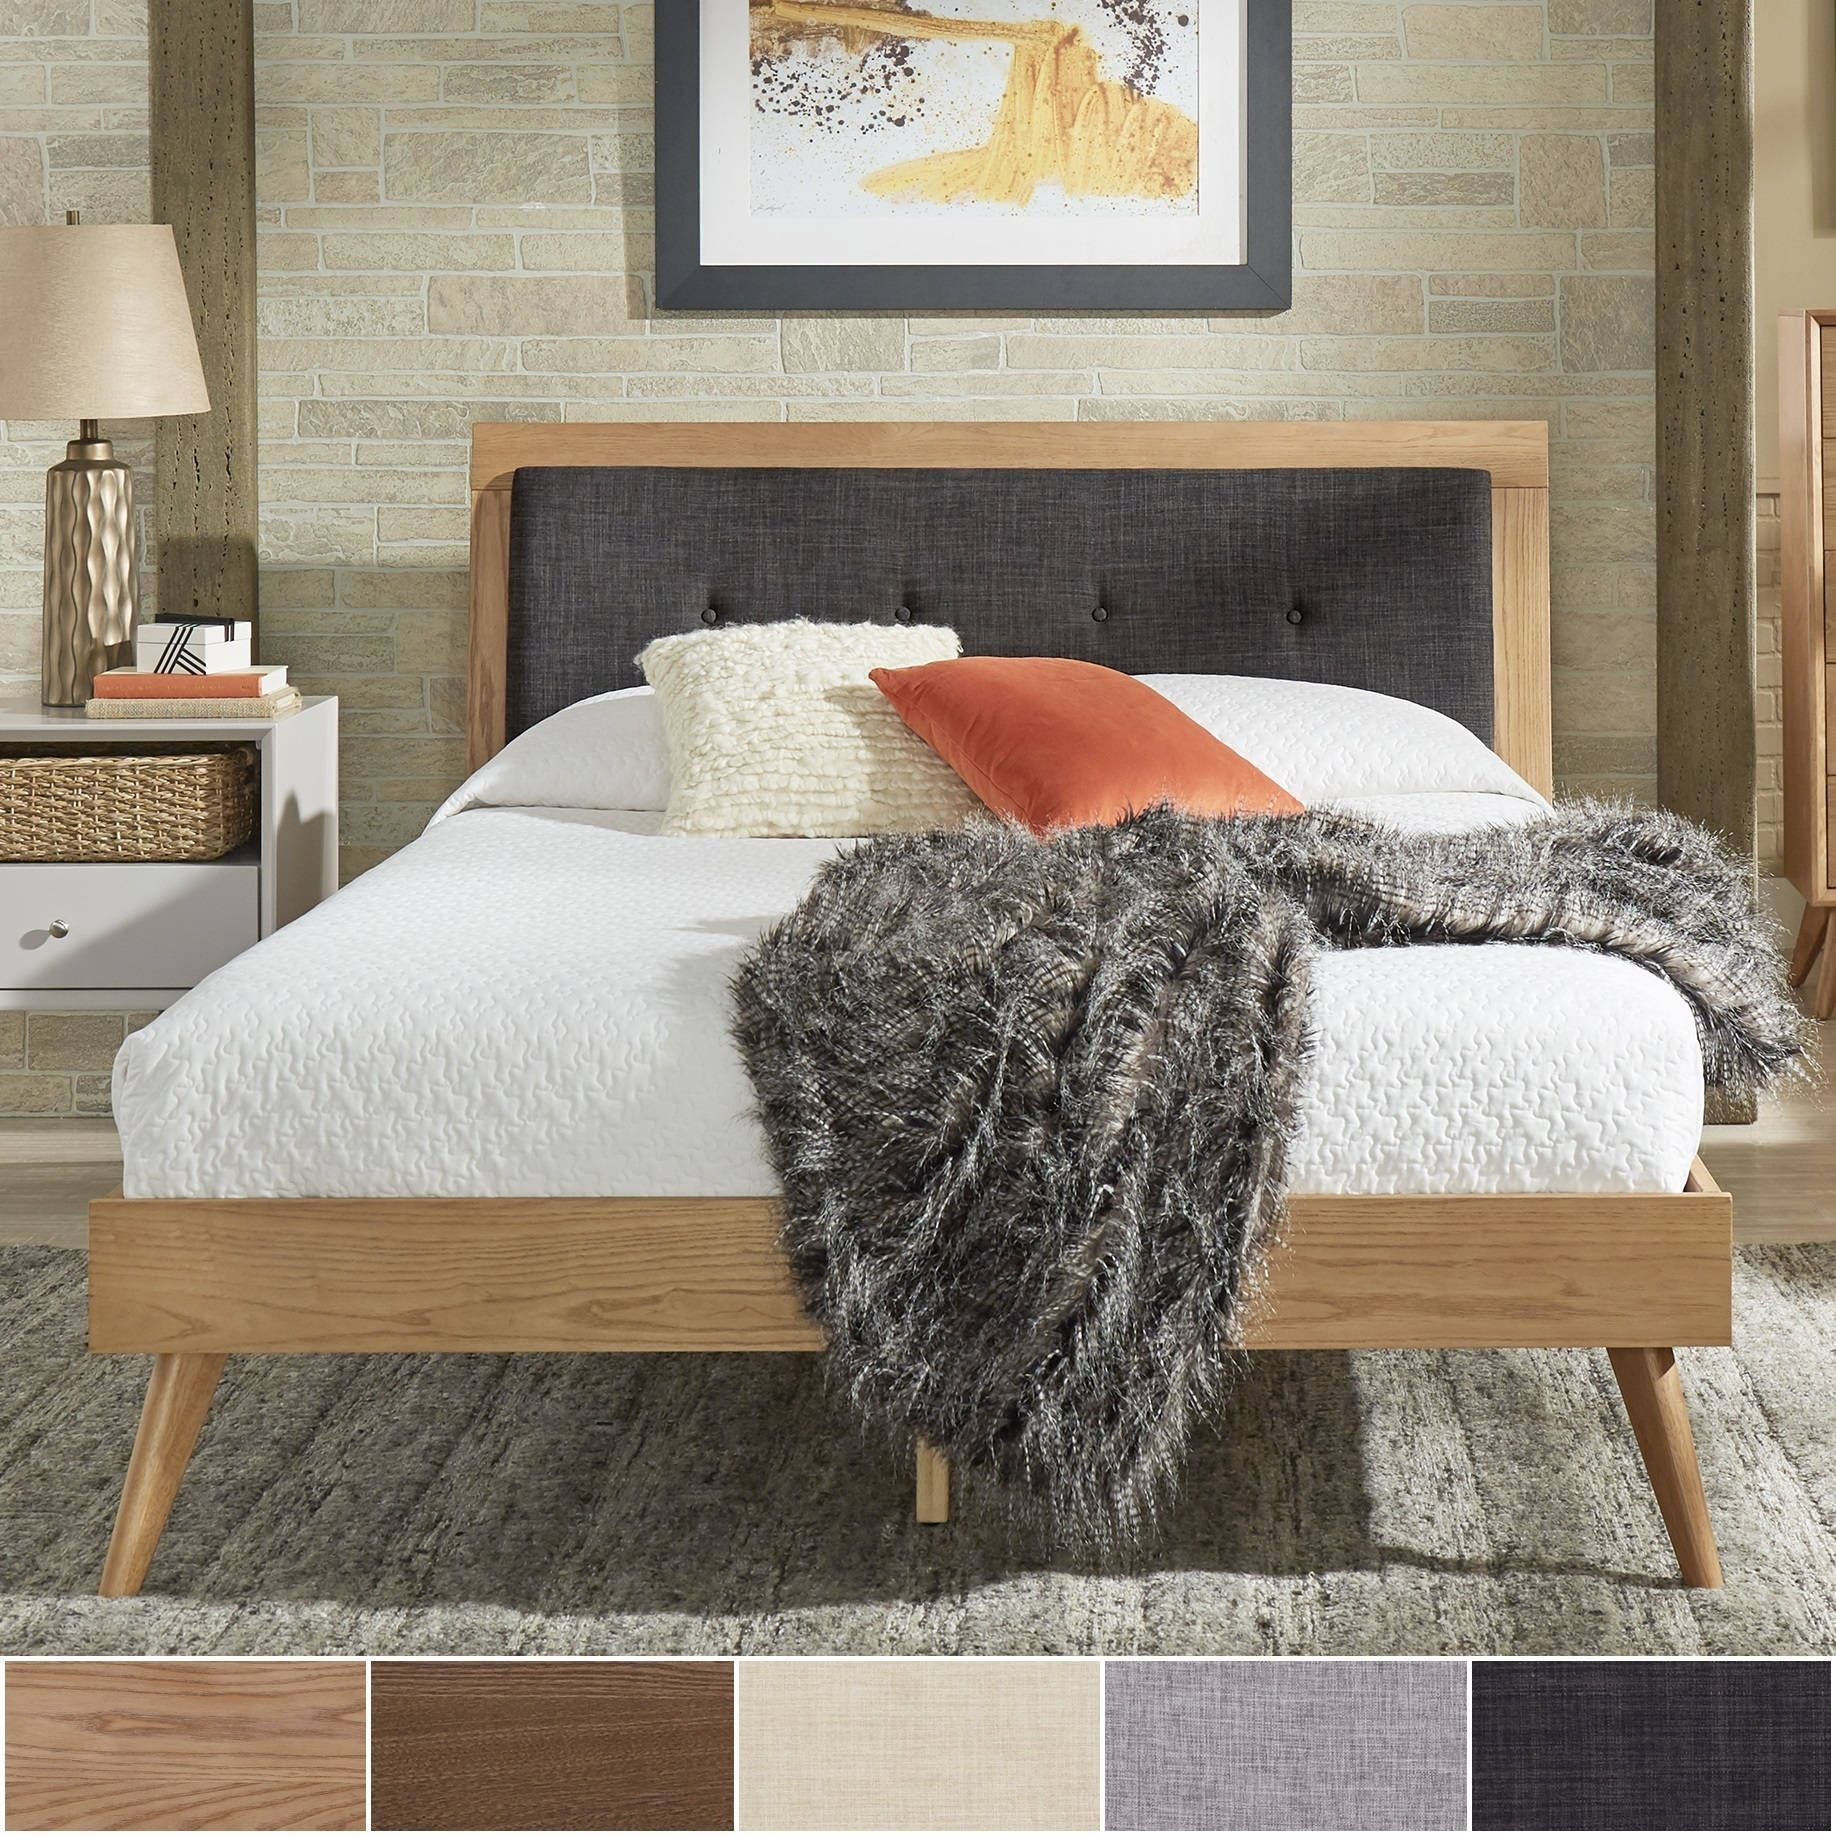 Sylvia Queen Size Mid-Century Tufted Linen and Wood Bed by iNSPIRE Q Modern  (Dark Walnut - Grey Linen), Brown